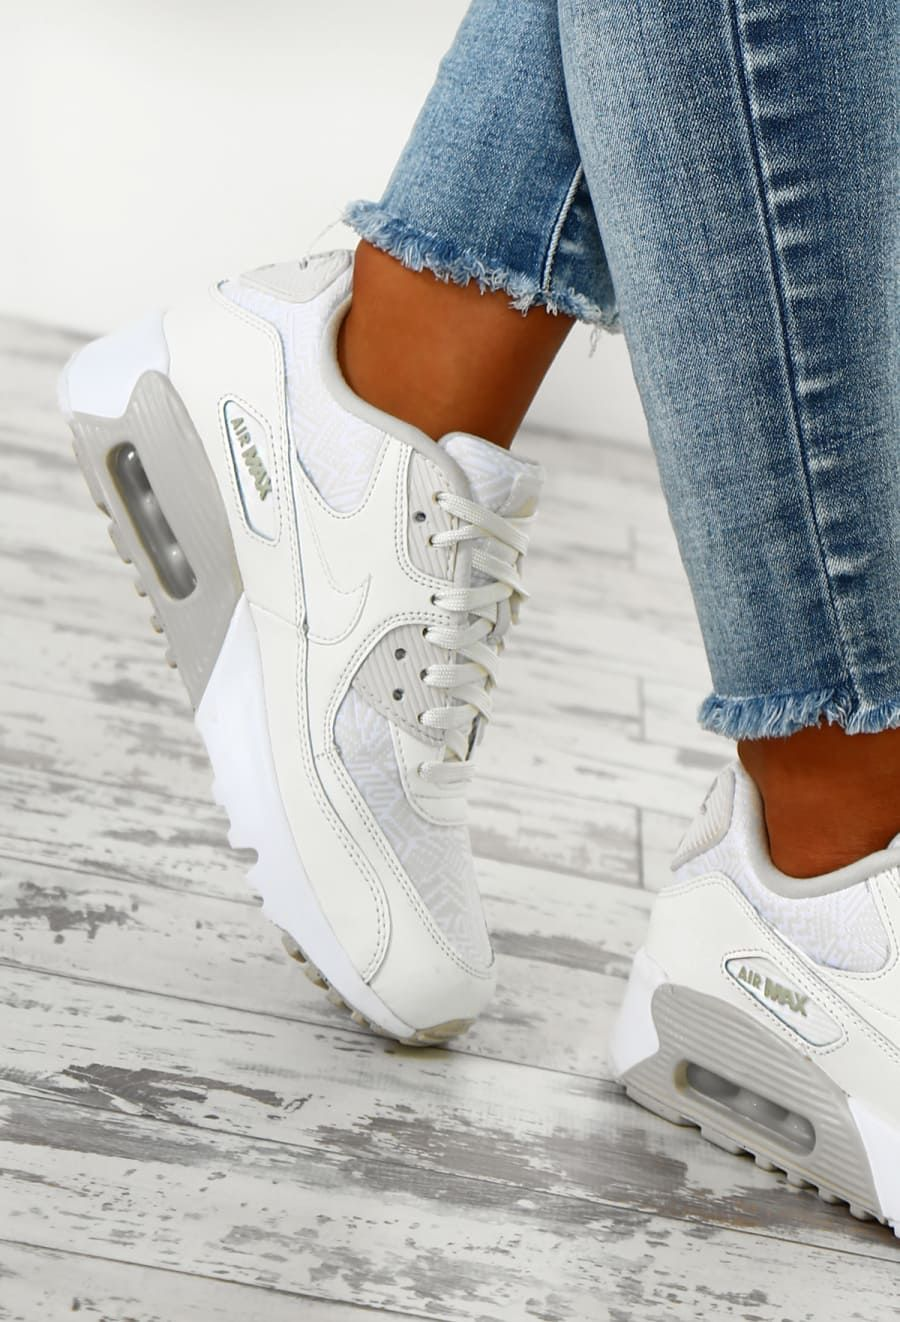 Nike Air Max 90 White Trainers UK 3 in 2020 | Sneakers